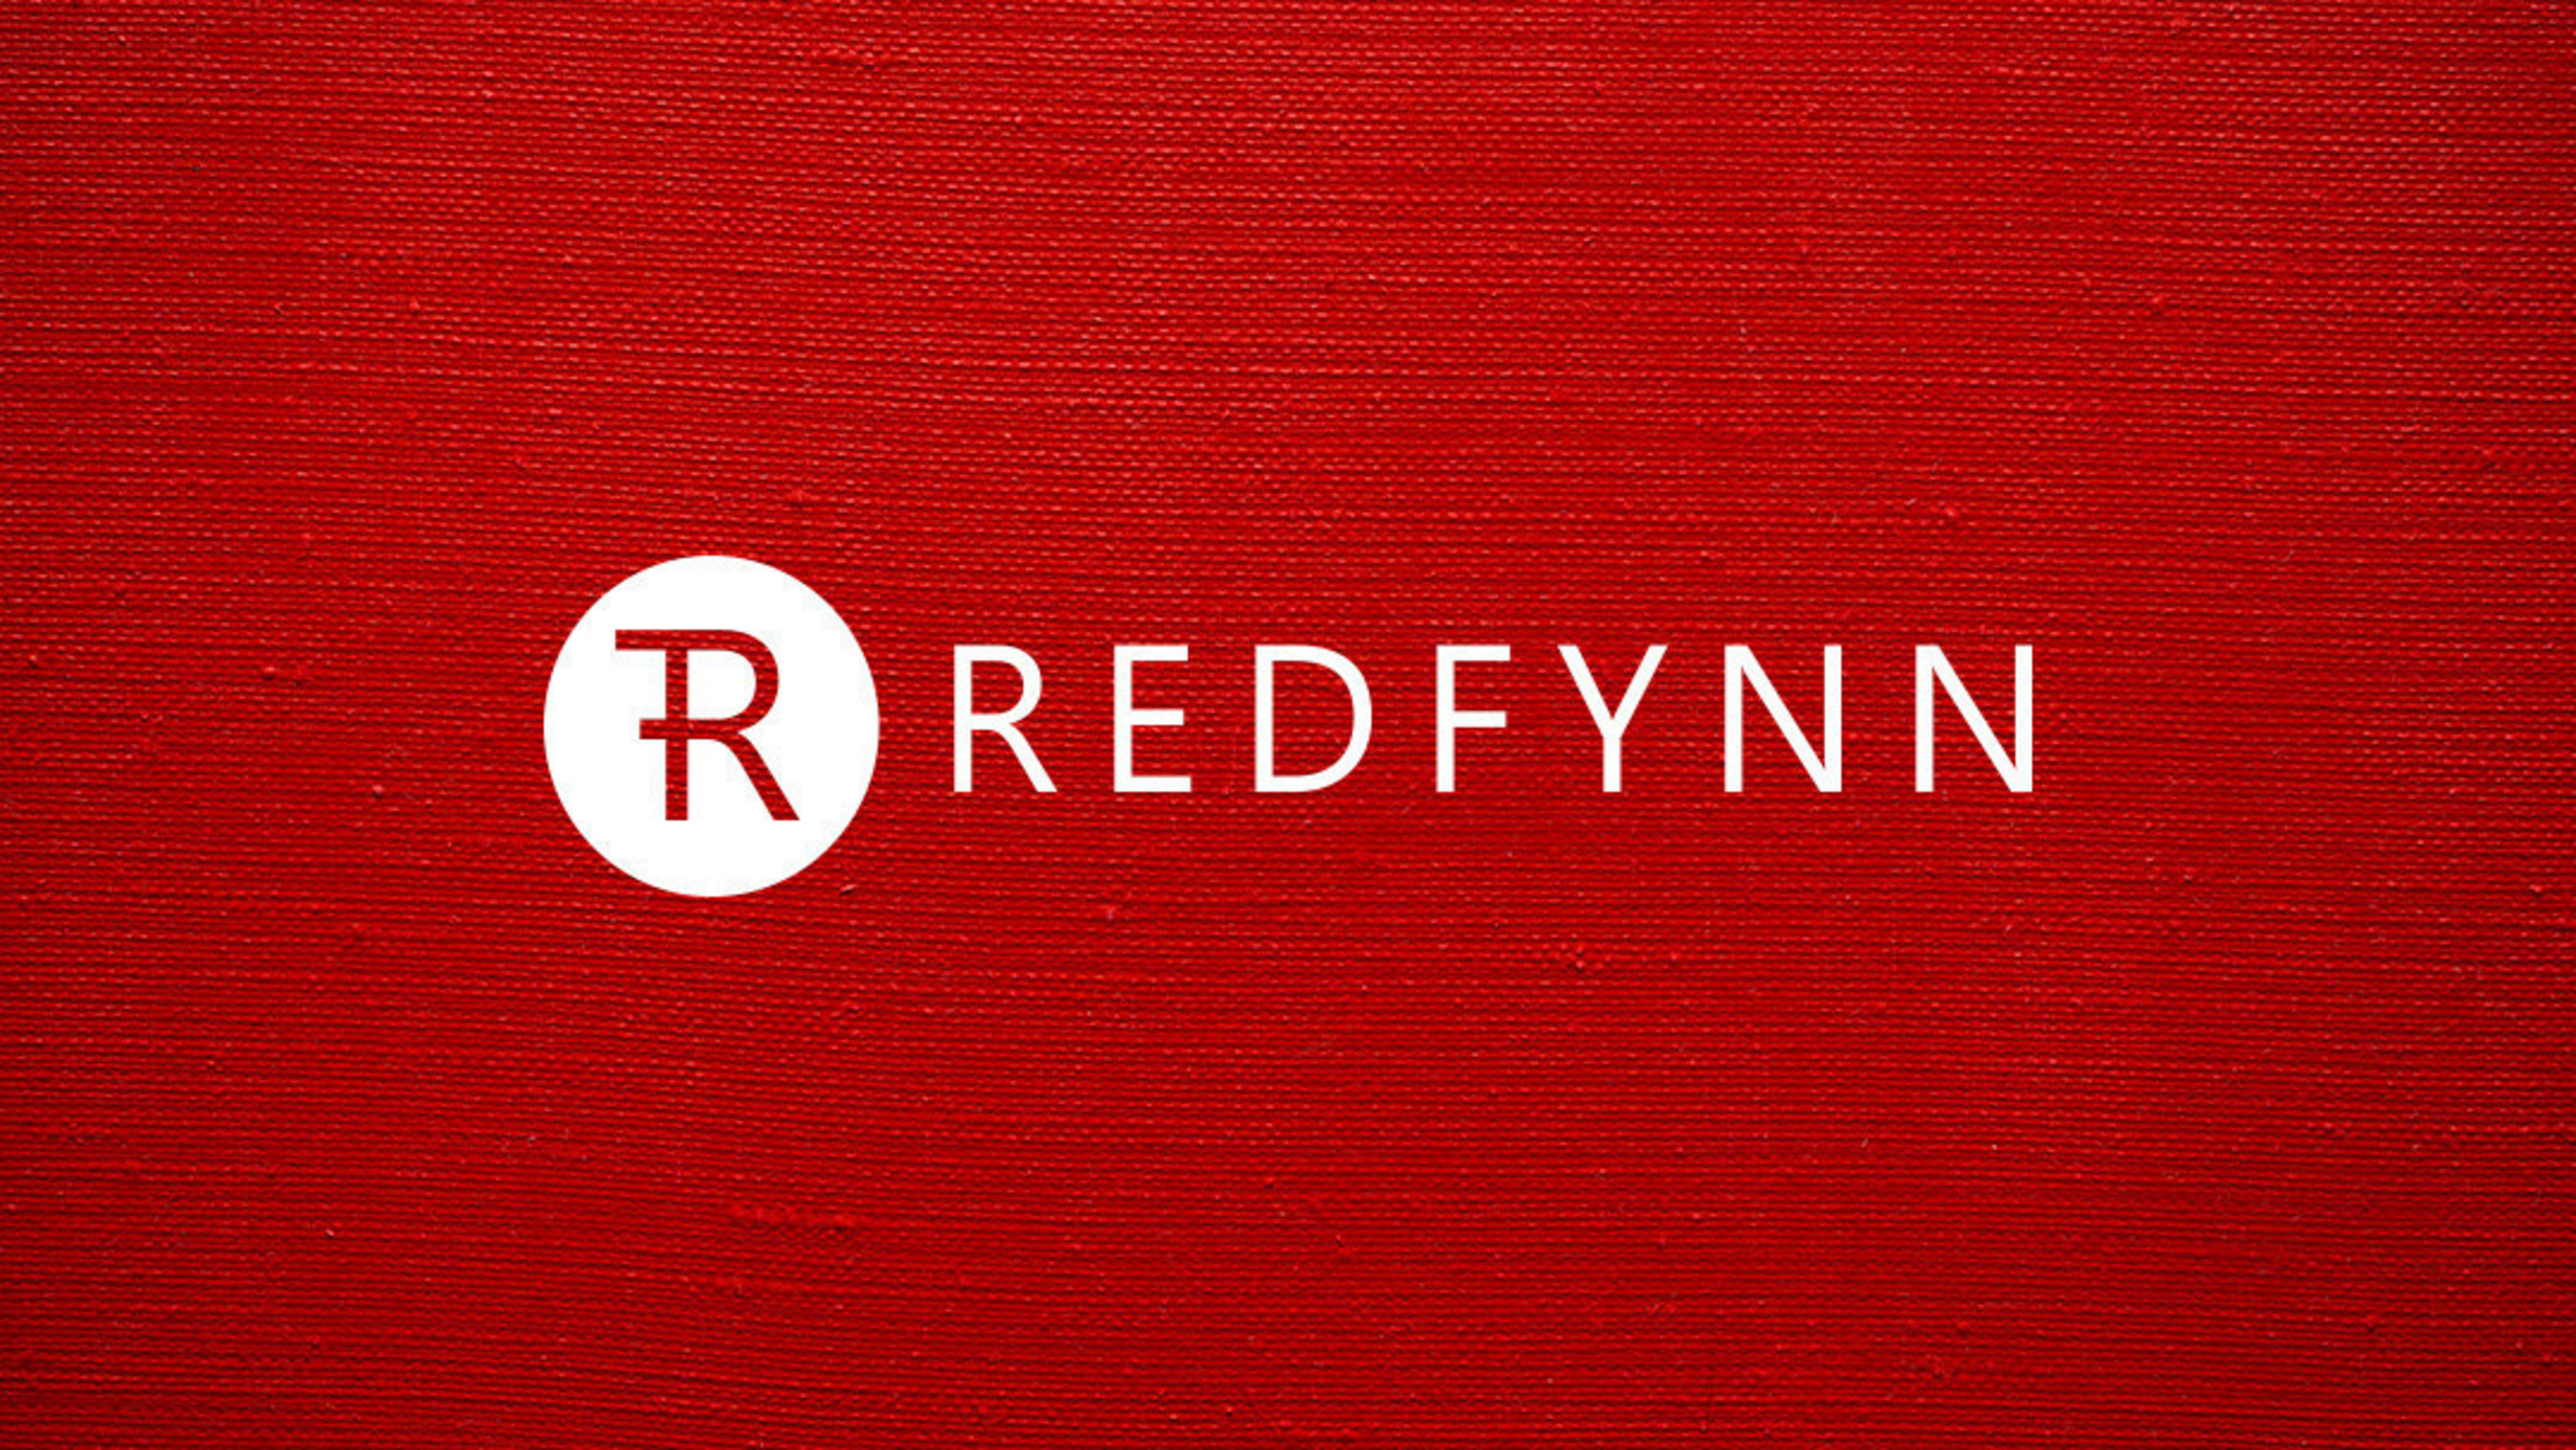 RedFynn Technologies Announces New Partnership: Fountain Hills Chamber of Commerce